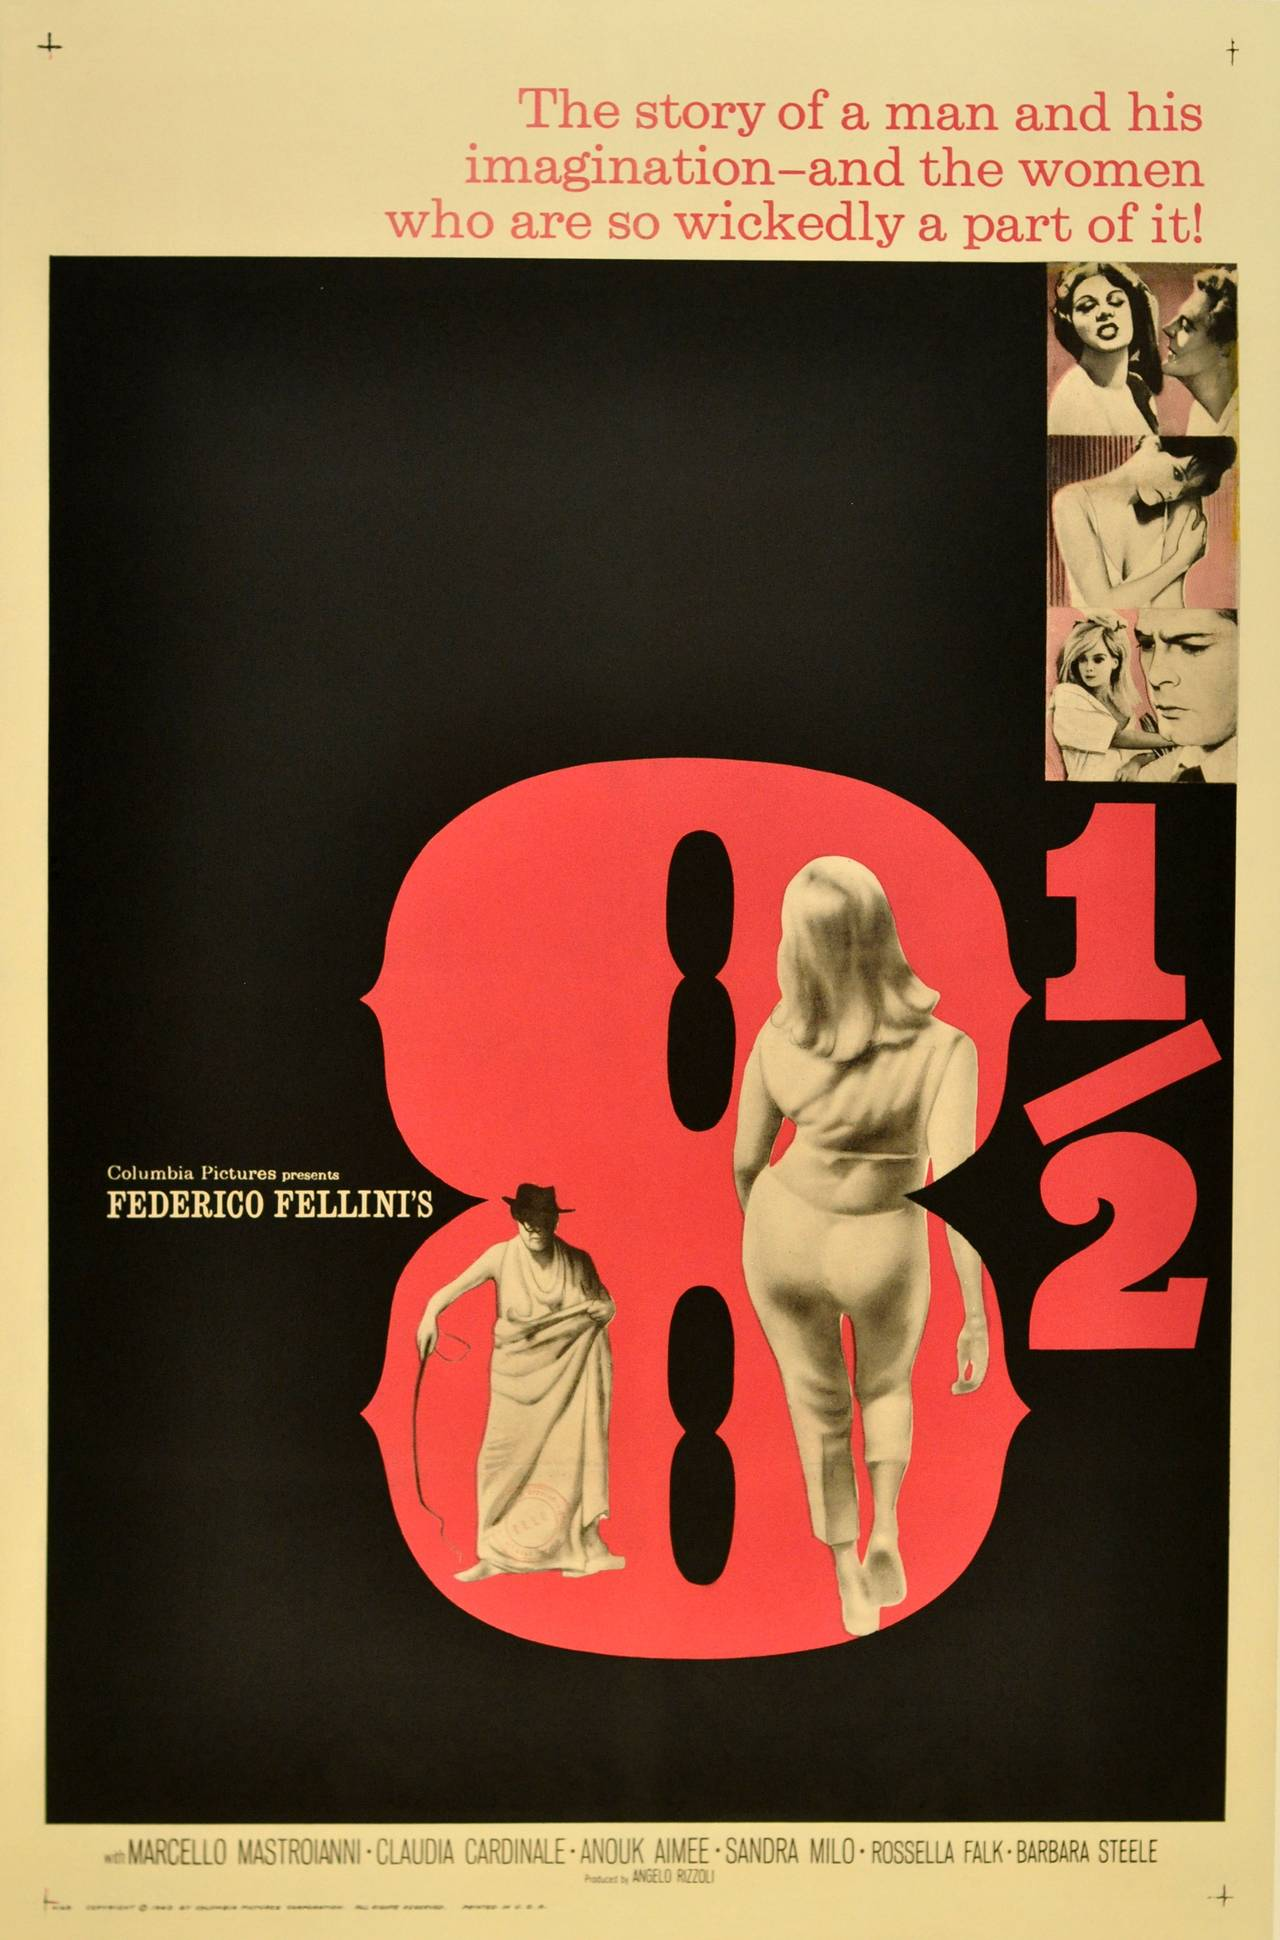 Vintage 8 Original Vintage Movie Poster For Federico Fellini S Award Winning Film 8 1 2